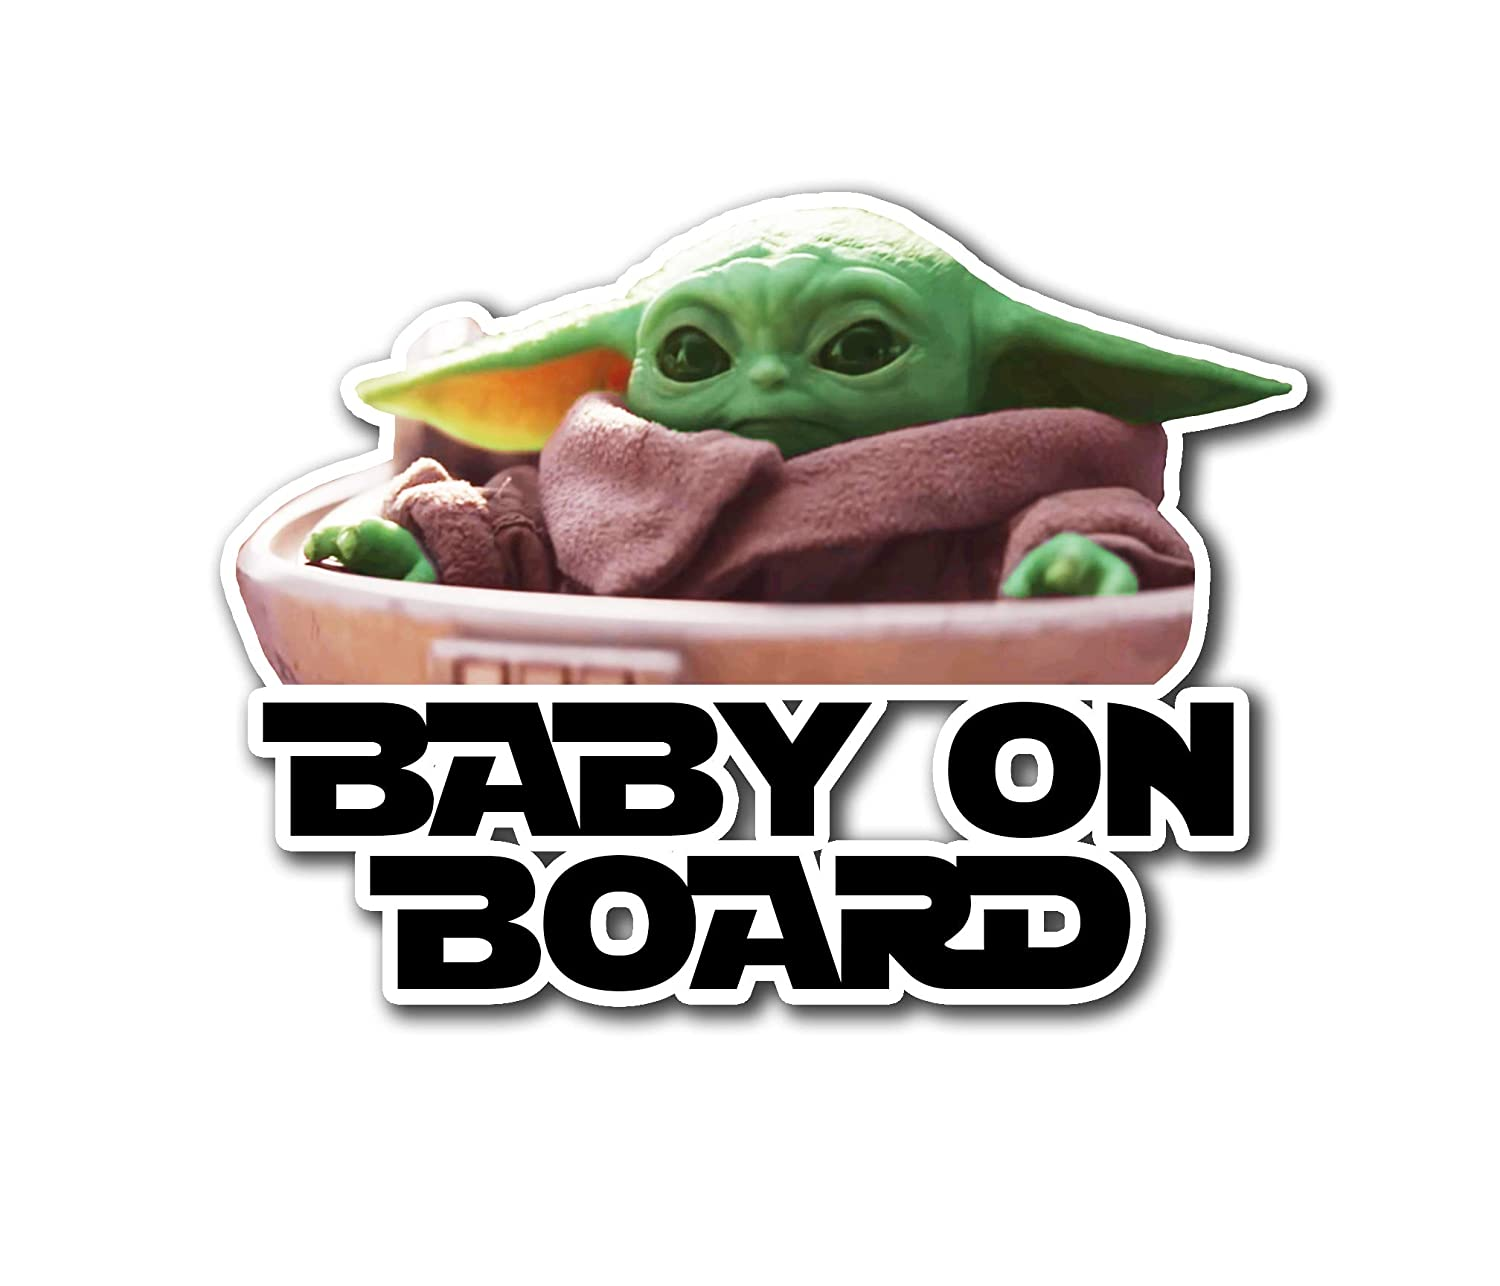 2 Stickers Ichthus Graphics Baby on Board Baby Yoda The Child Mandalorian Jedi Vinyl 1 Pair Decal Gift for Fans to Place on Window Car Truck Vehicle Bumper Laptop MacBook Computer Mug